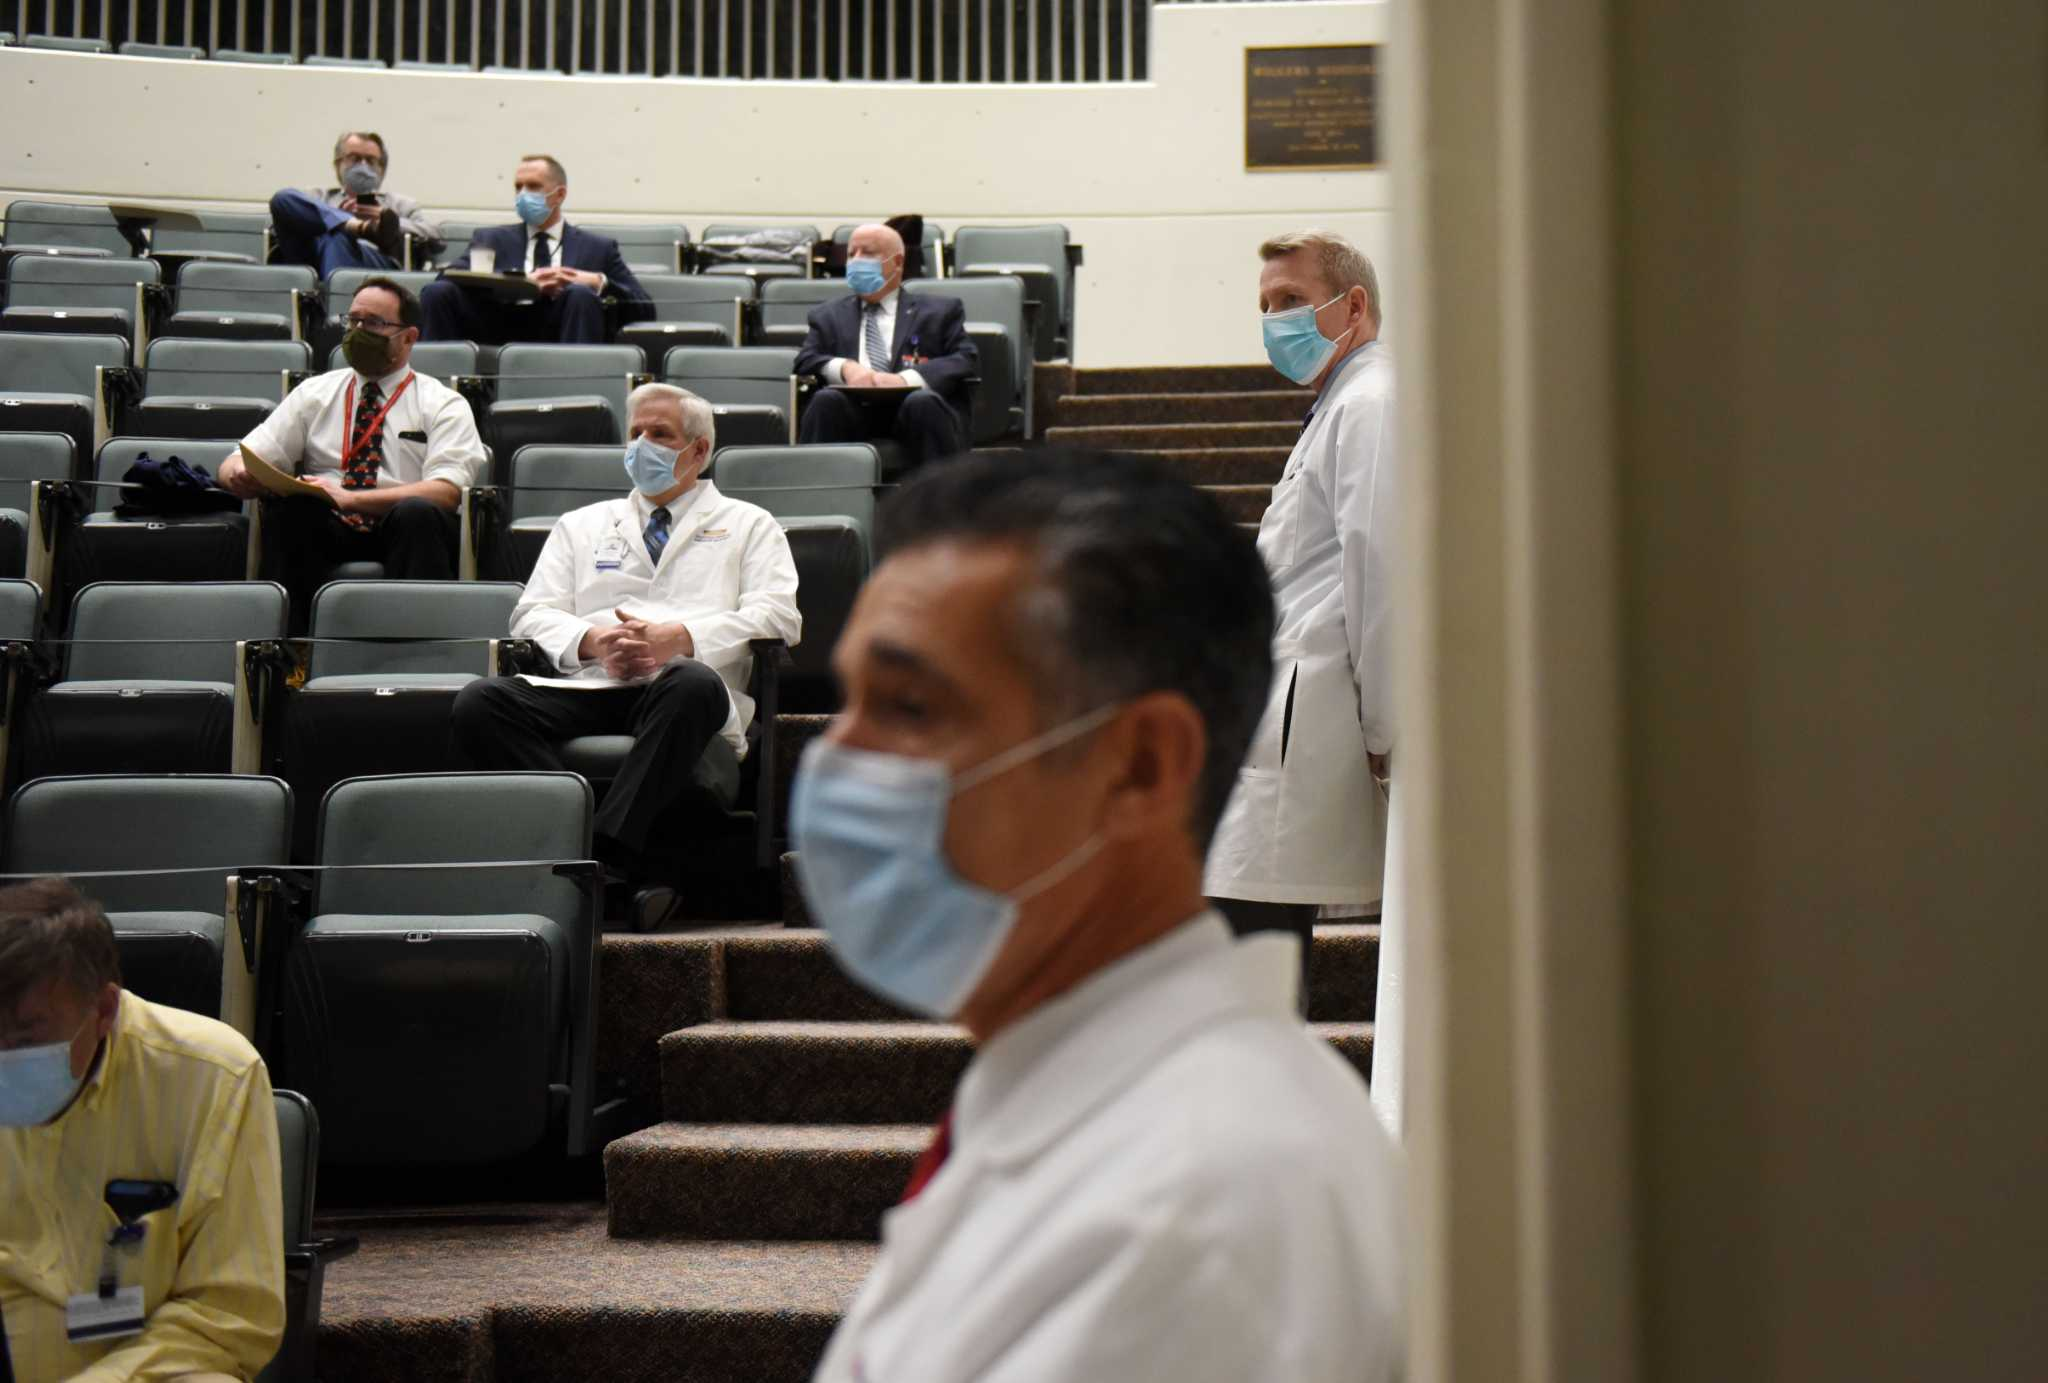 ALBANY — Capital Region hospitals are scrambling to find new ways to recruit and retain staff amid a staffing shortage they say has reached crisis l